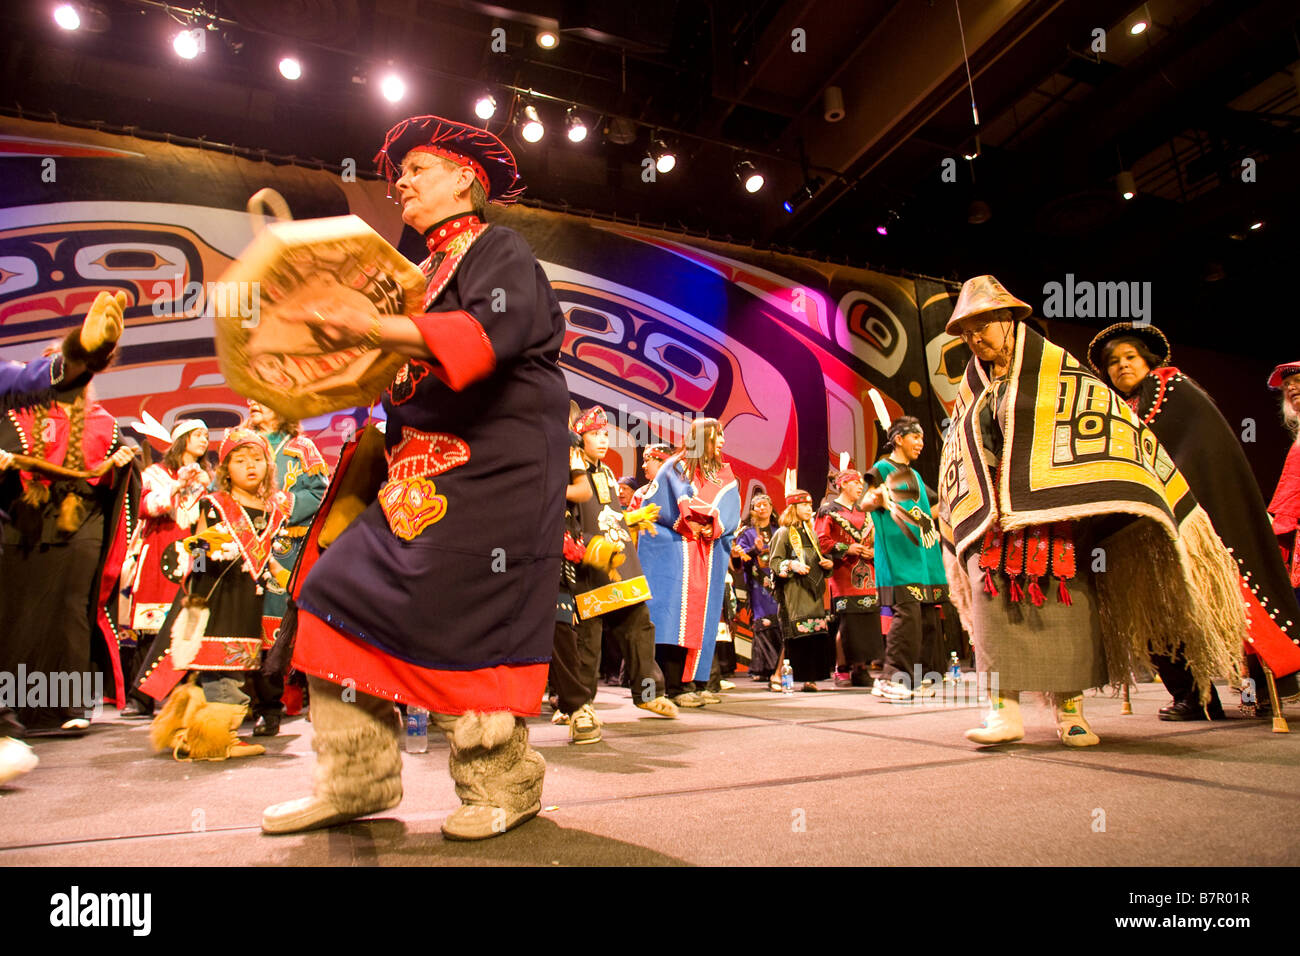 Sealaska Heritage Institute Tlingit, Haida, and Tsimshian Celebration 2008, Juneau, Alaska - Stock Image